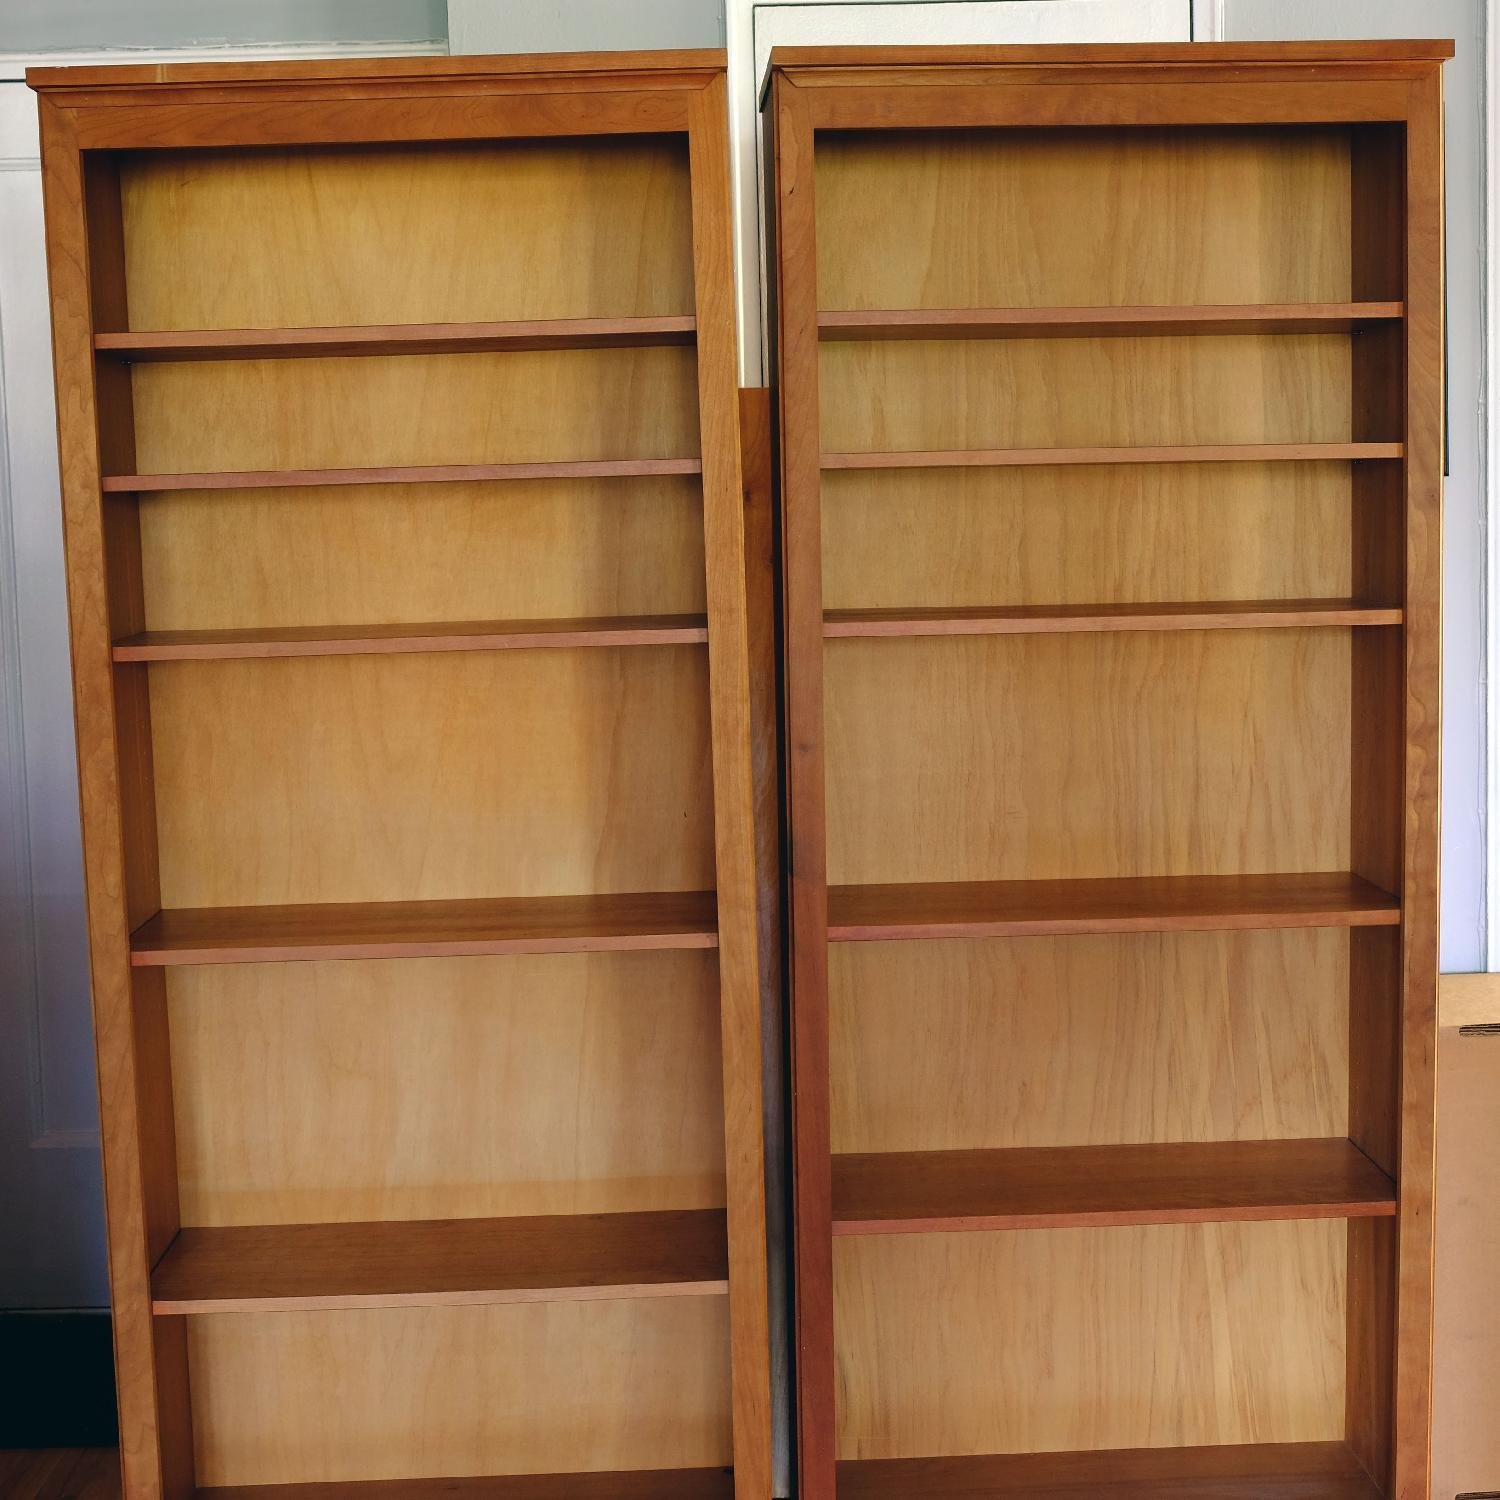 Crate & Barrel Matching Bookcase Set - image-5